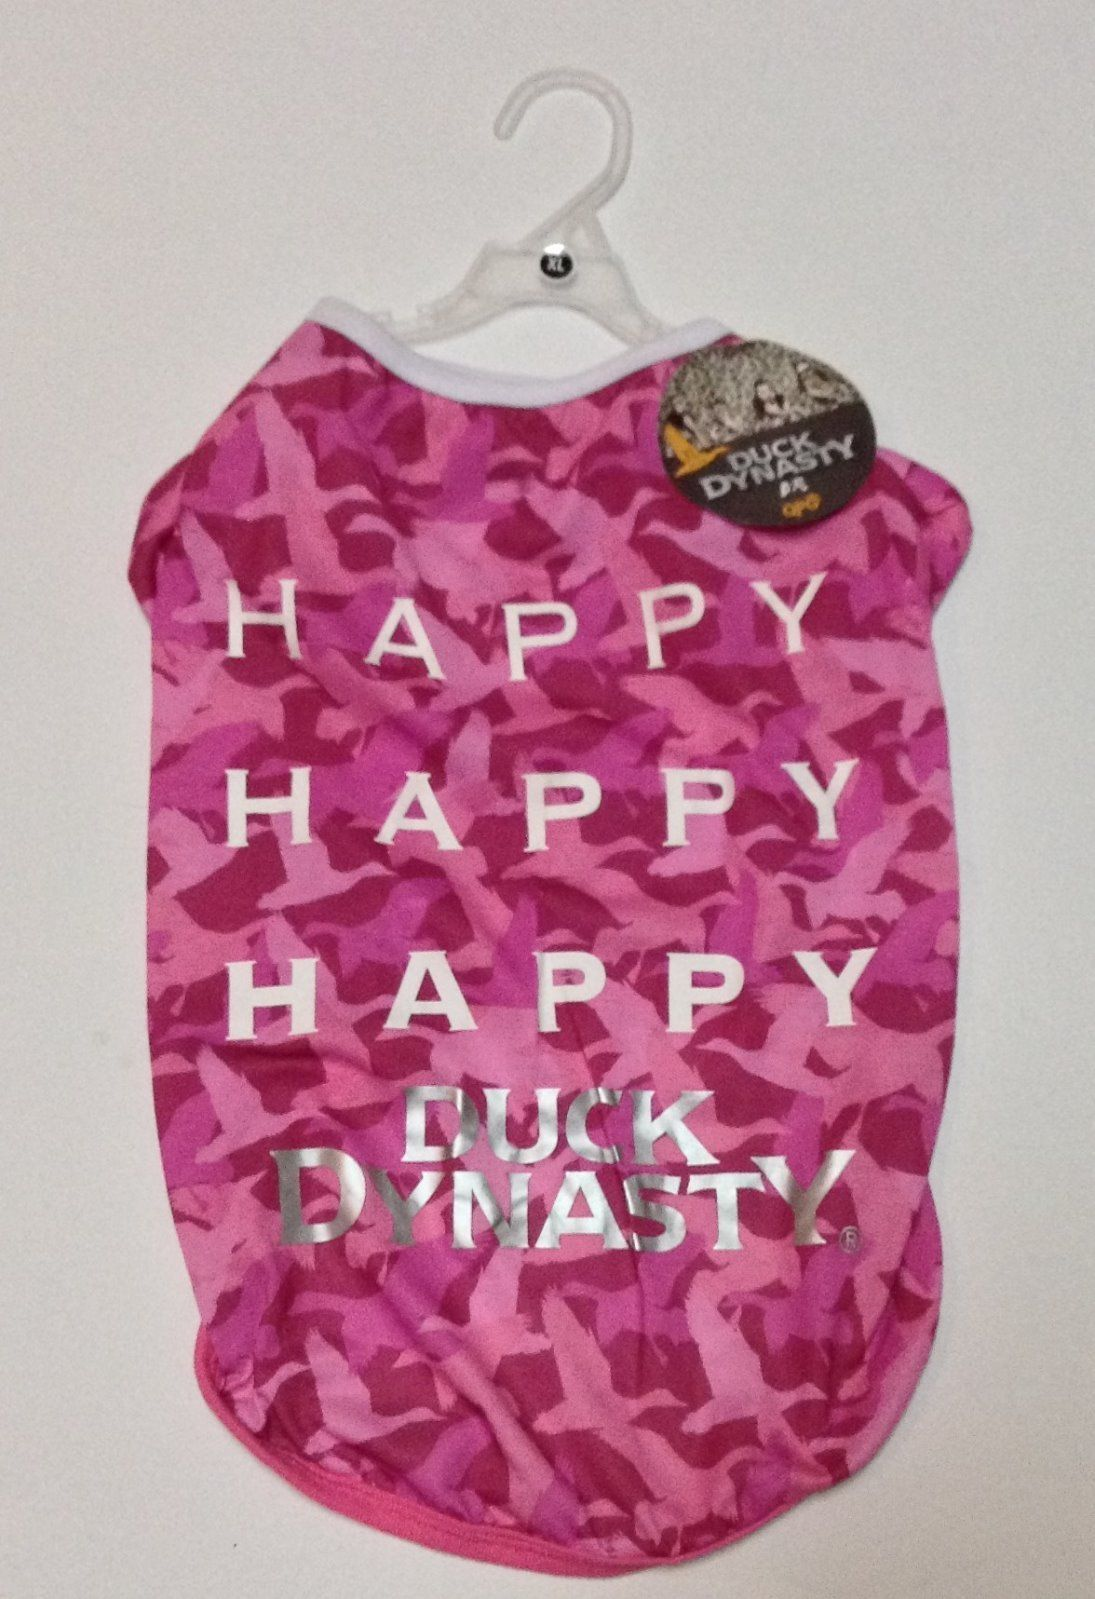 "Pink Duck Dynasty Pet Shirt NWT Sz XL 19-21"" HAPPY HAPPY"